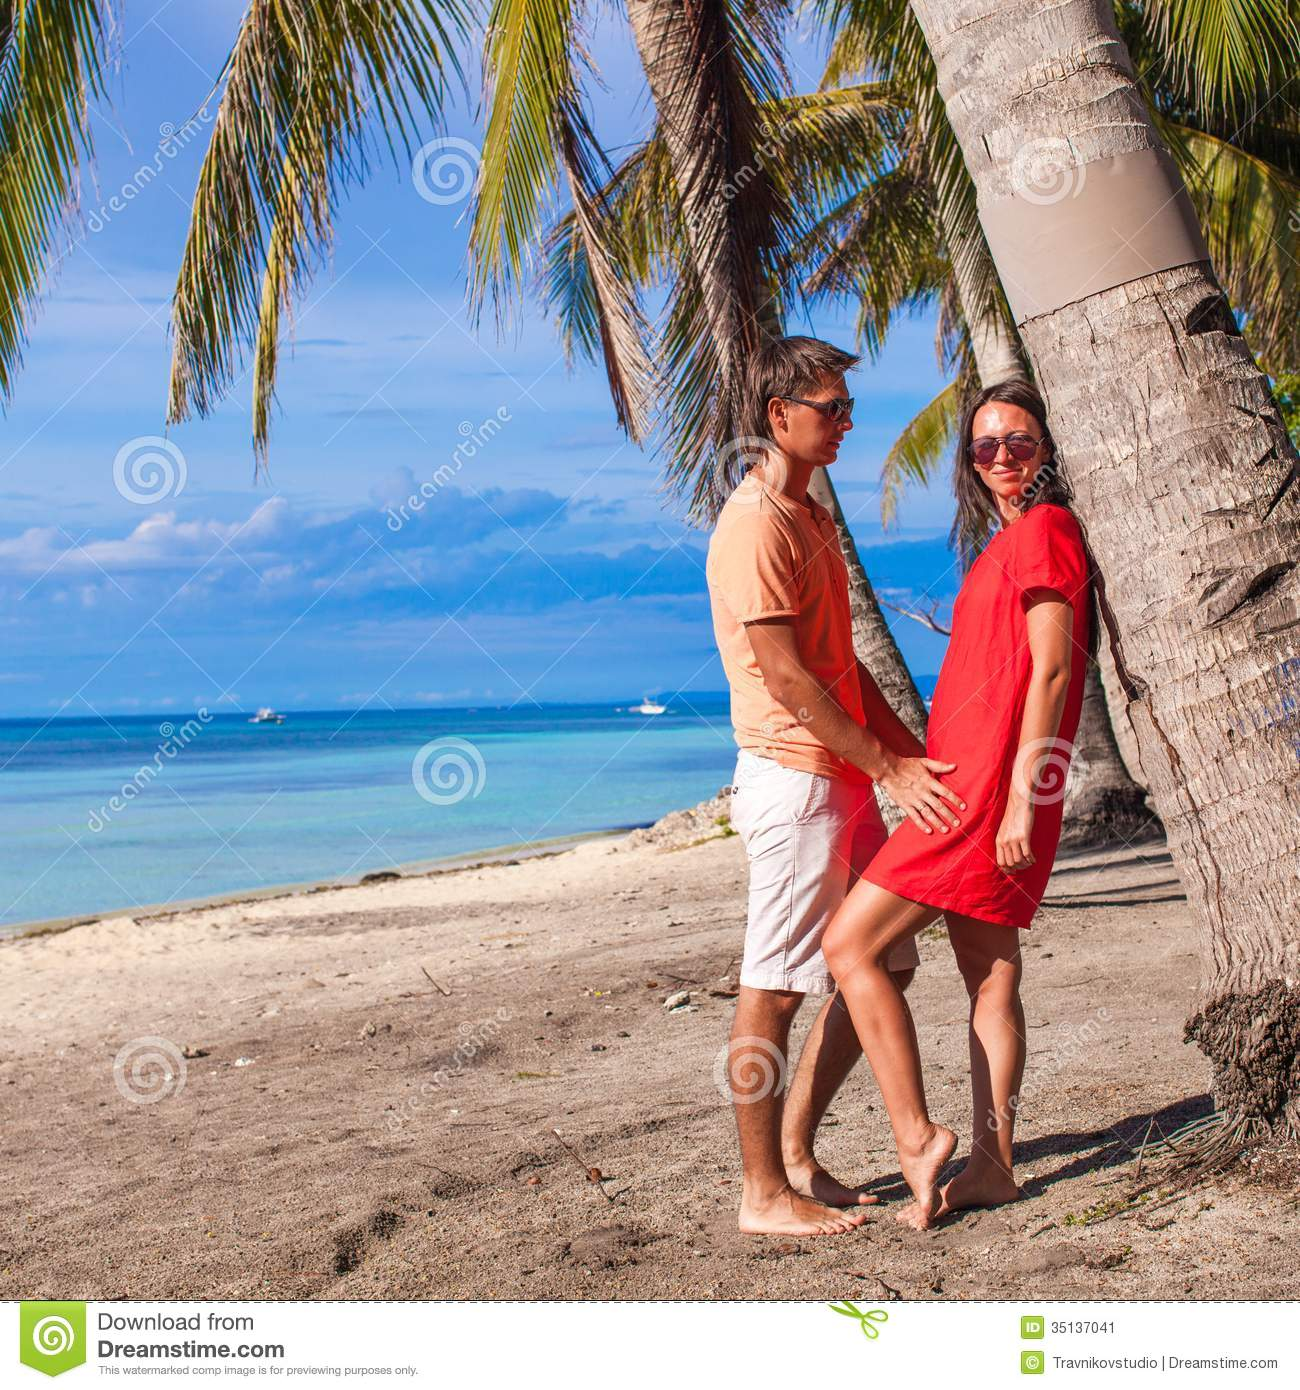 Couple At The Beach Stock Image Image Of Caucasian: Close Up Romantic Couple At Tropical Beach Near Stock